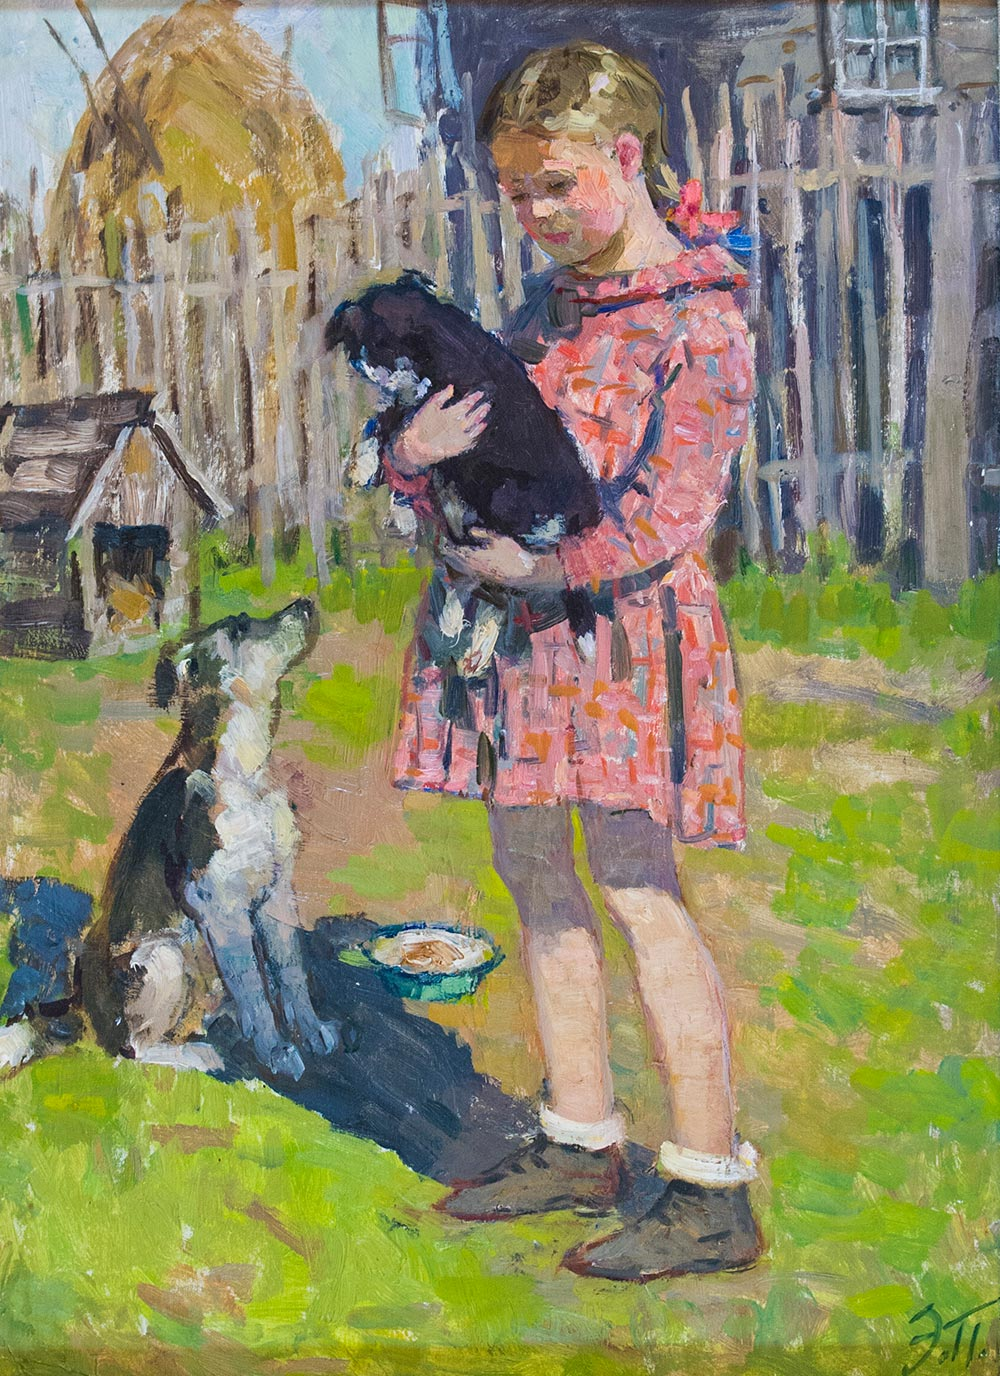 Girl with a puppy.